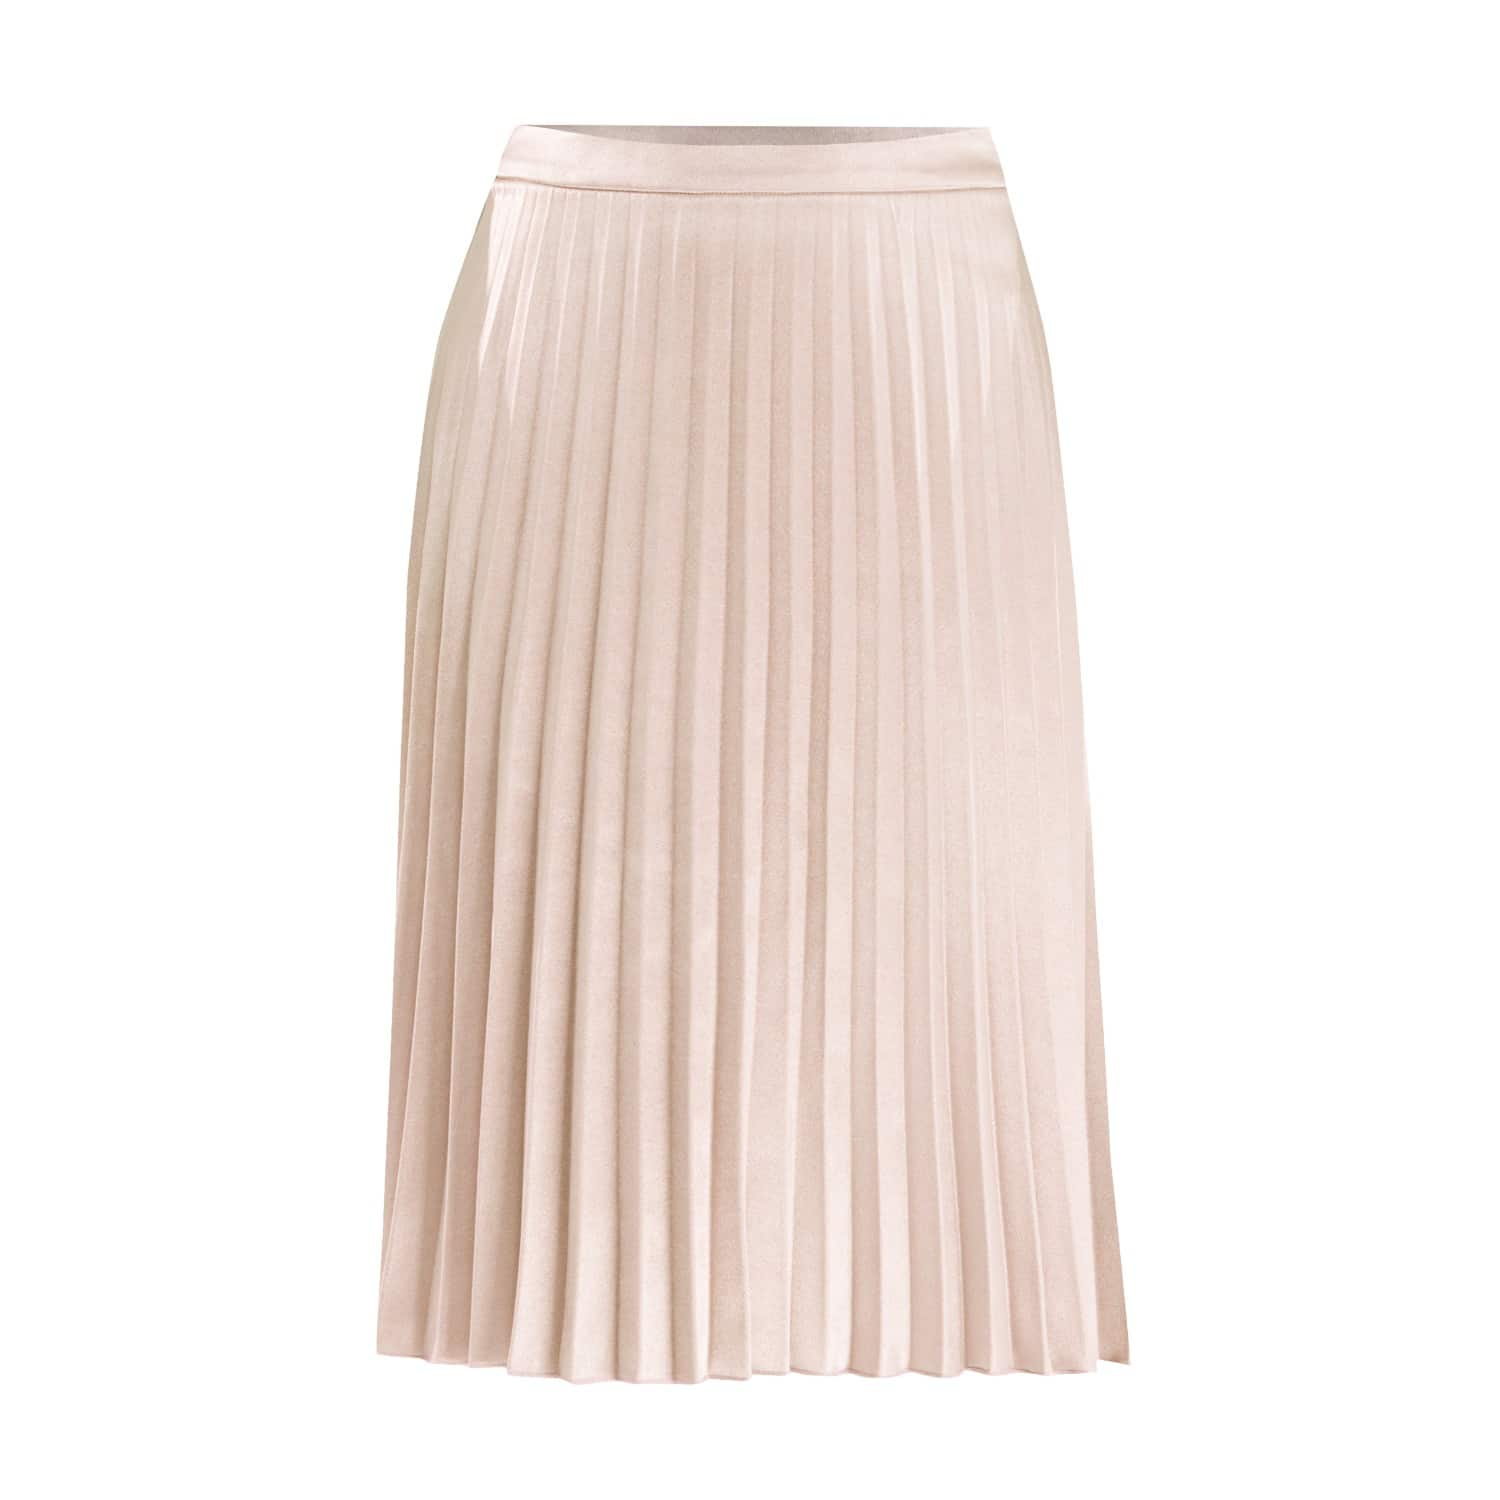 world-wide selection of price exceptional range of colors Pleated Skirt in Champagne by PAISIE